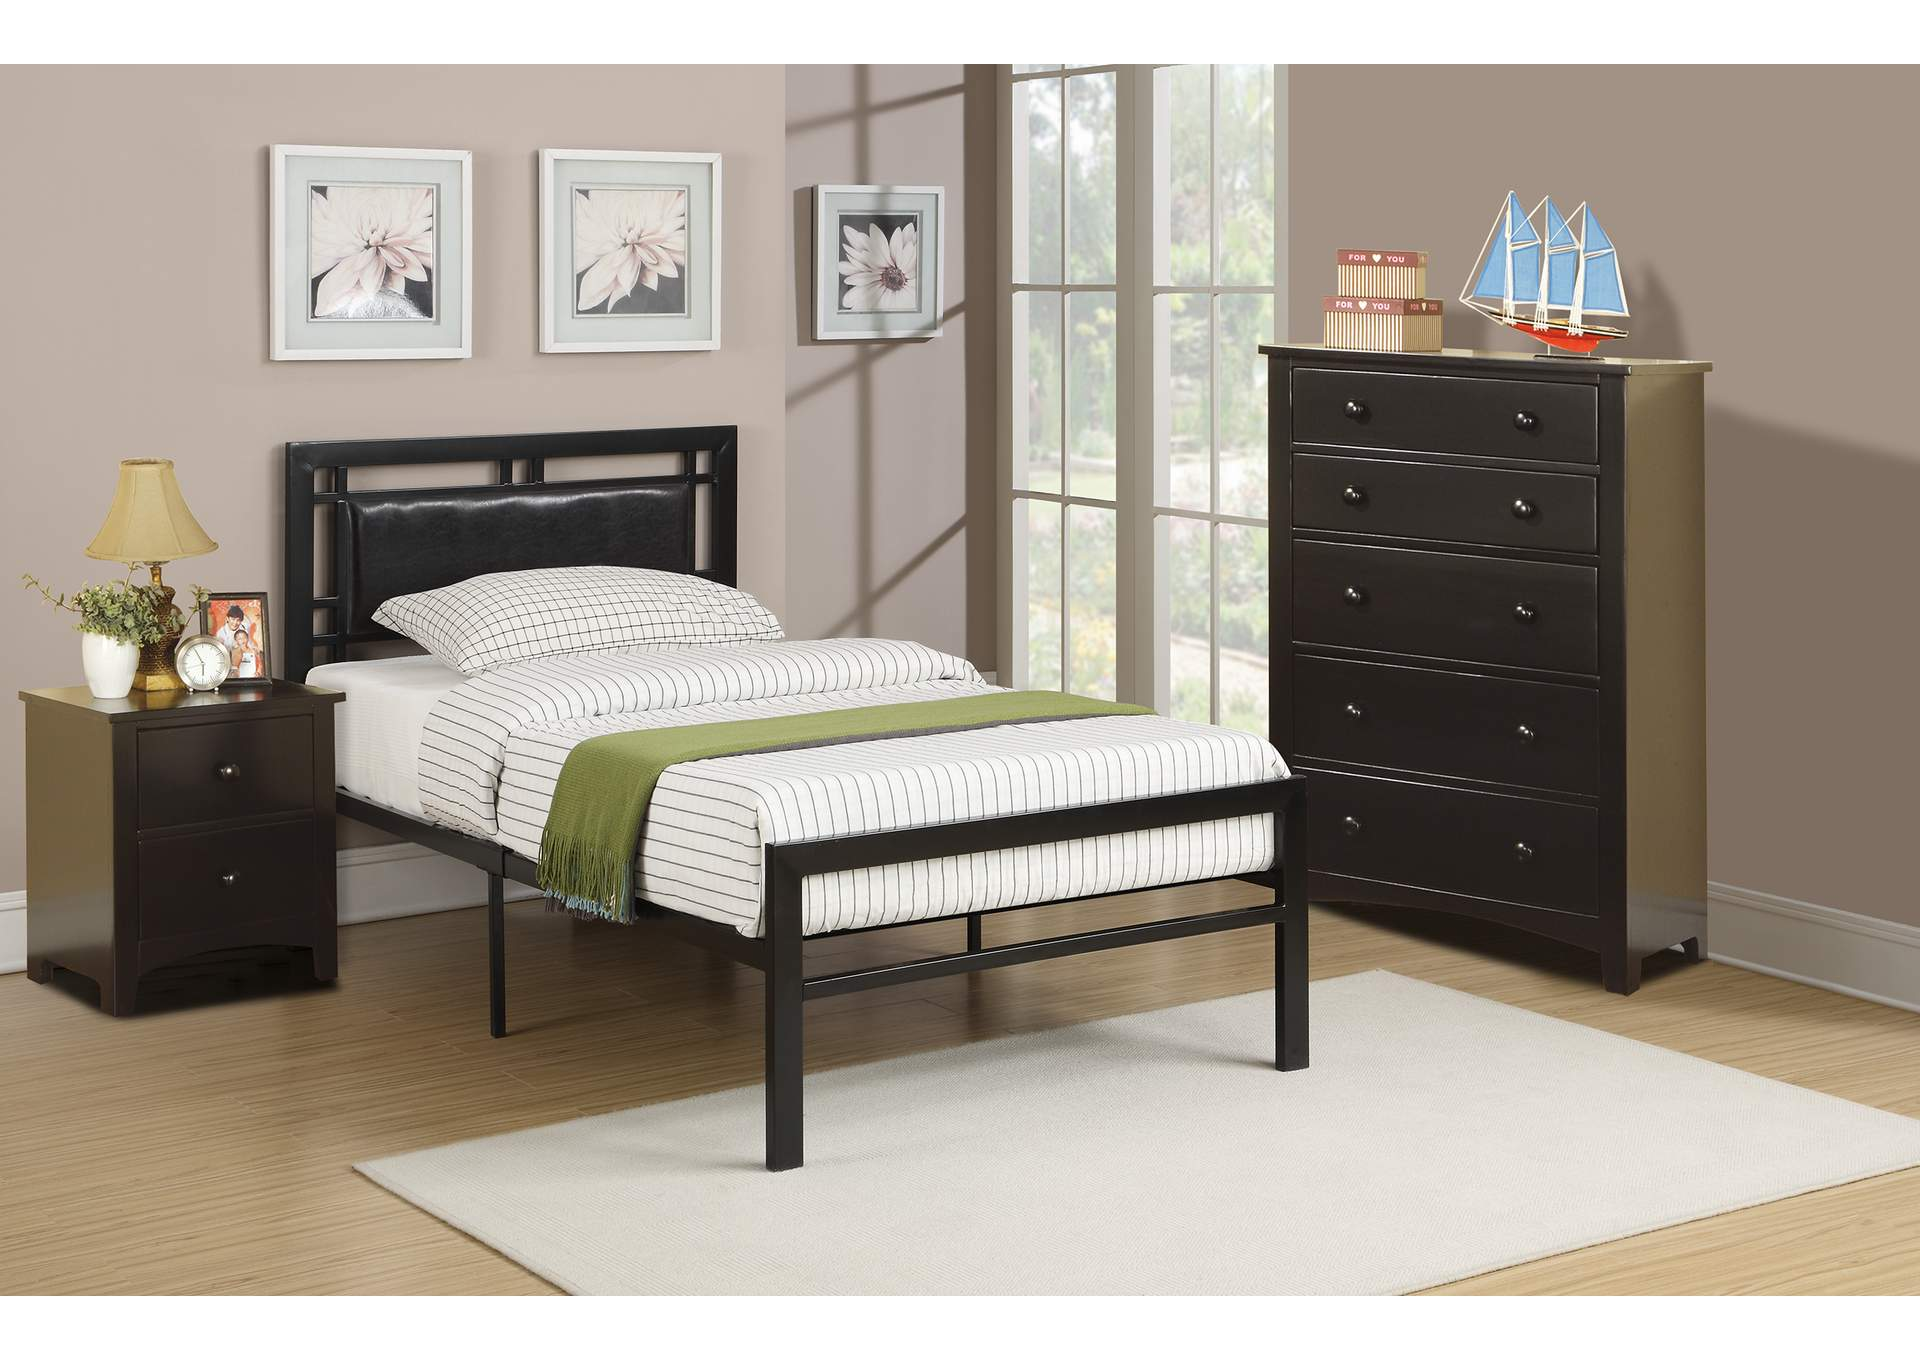 Black Twin Bed,Poundex